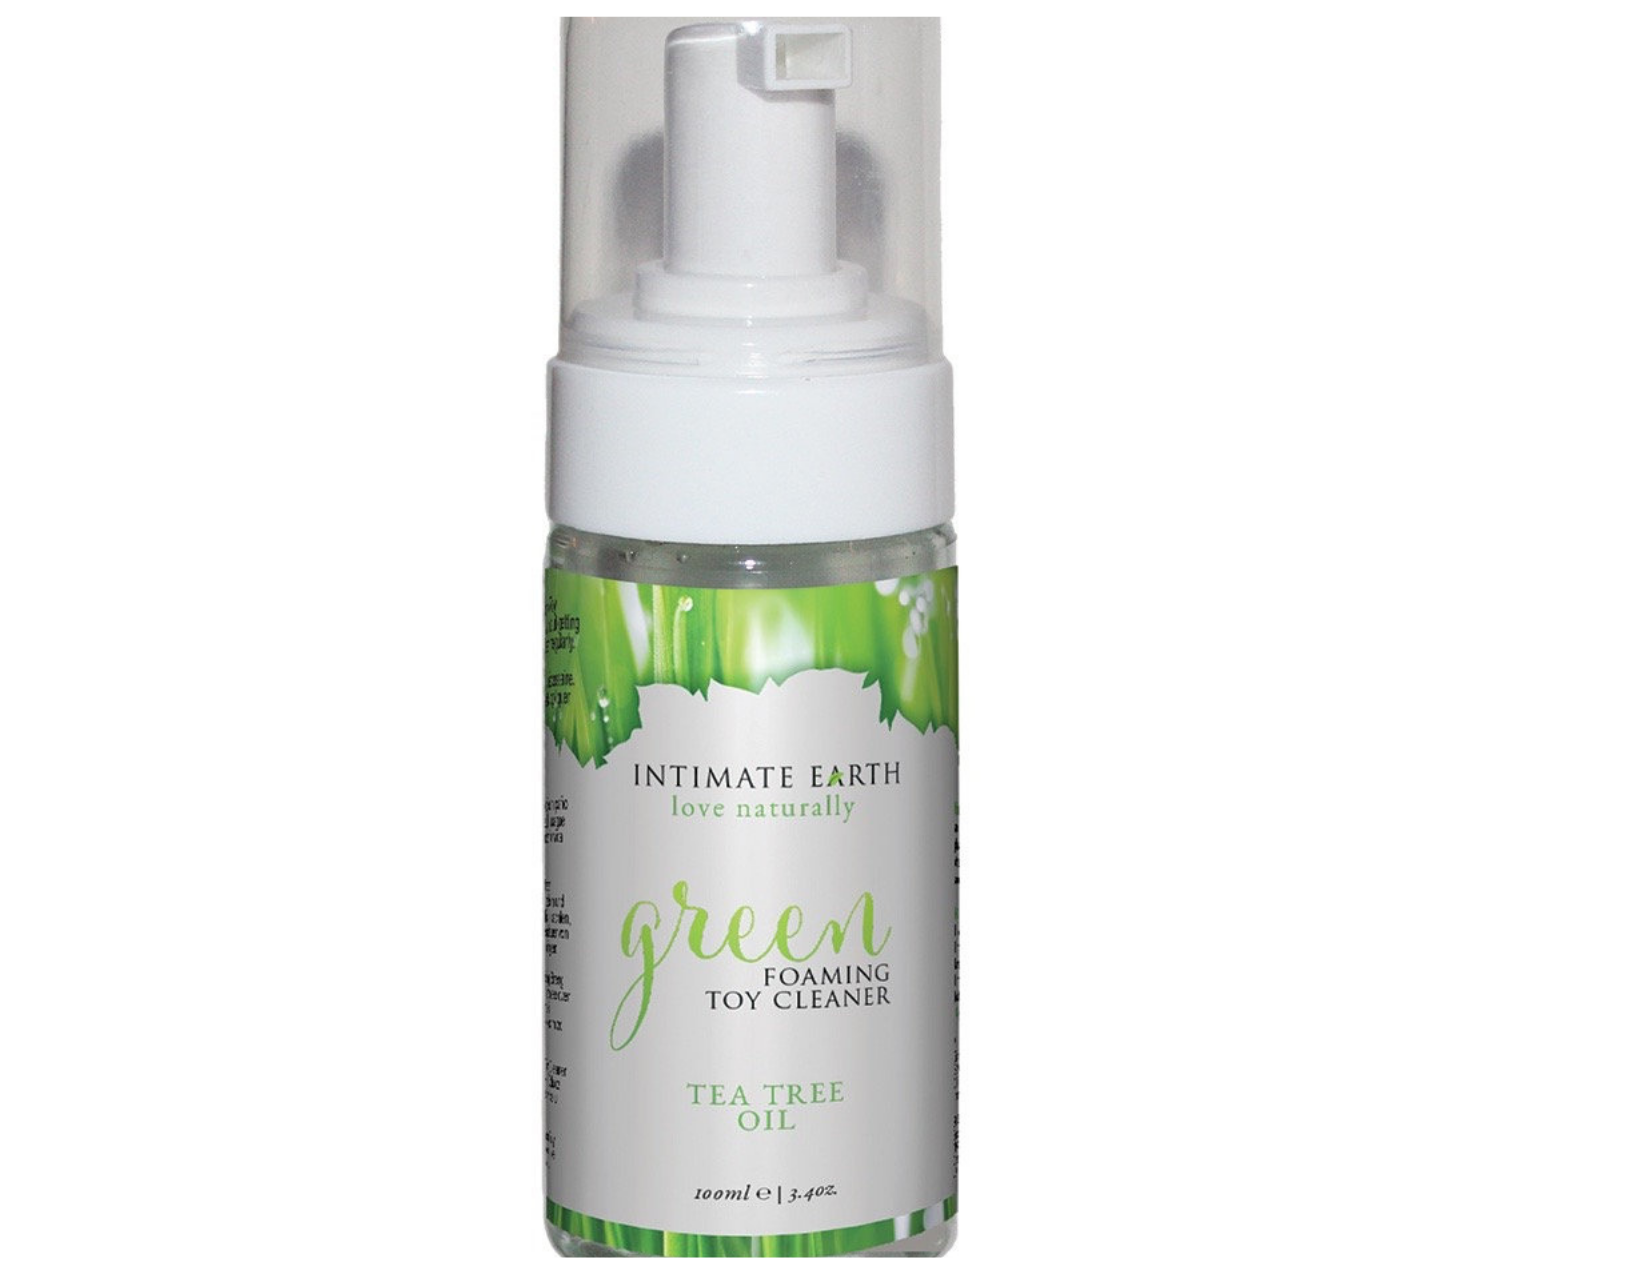 Intimate Earth Green Tea toy cleaner